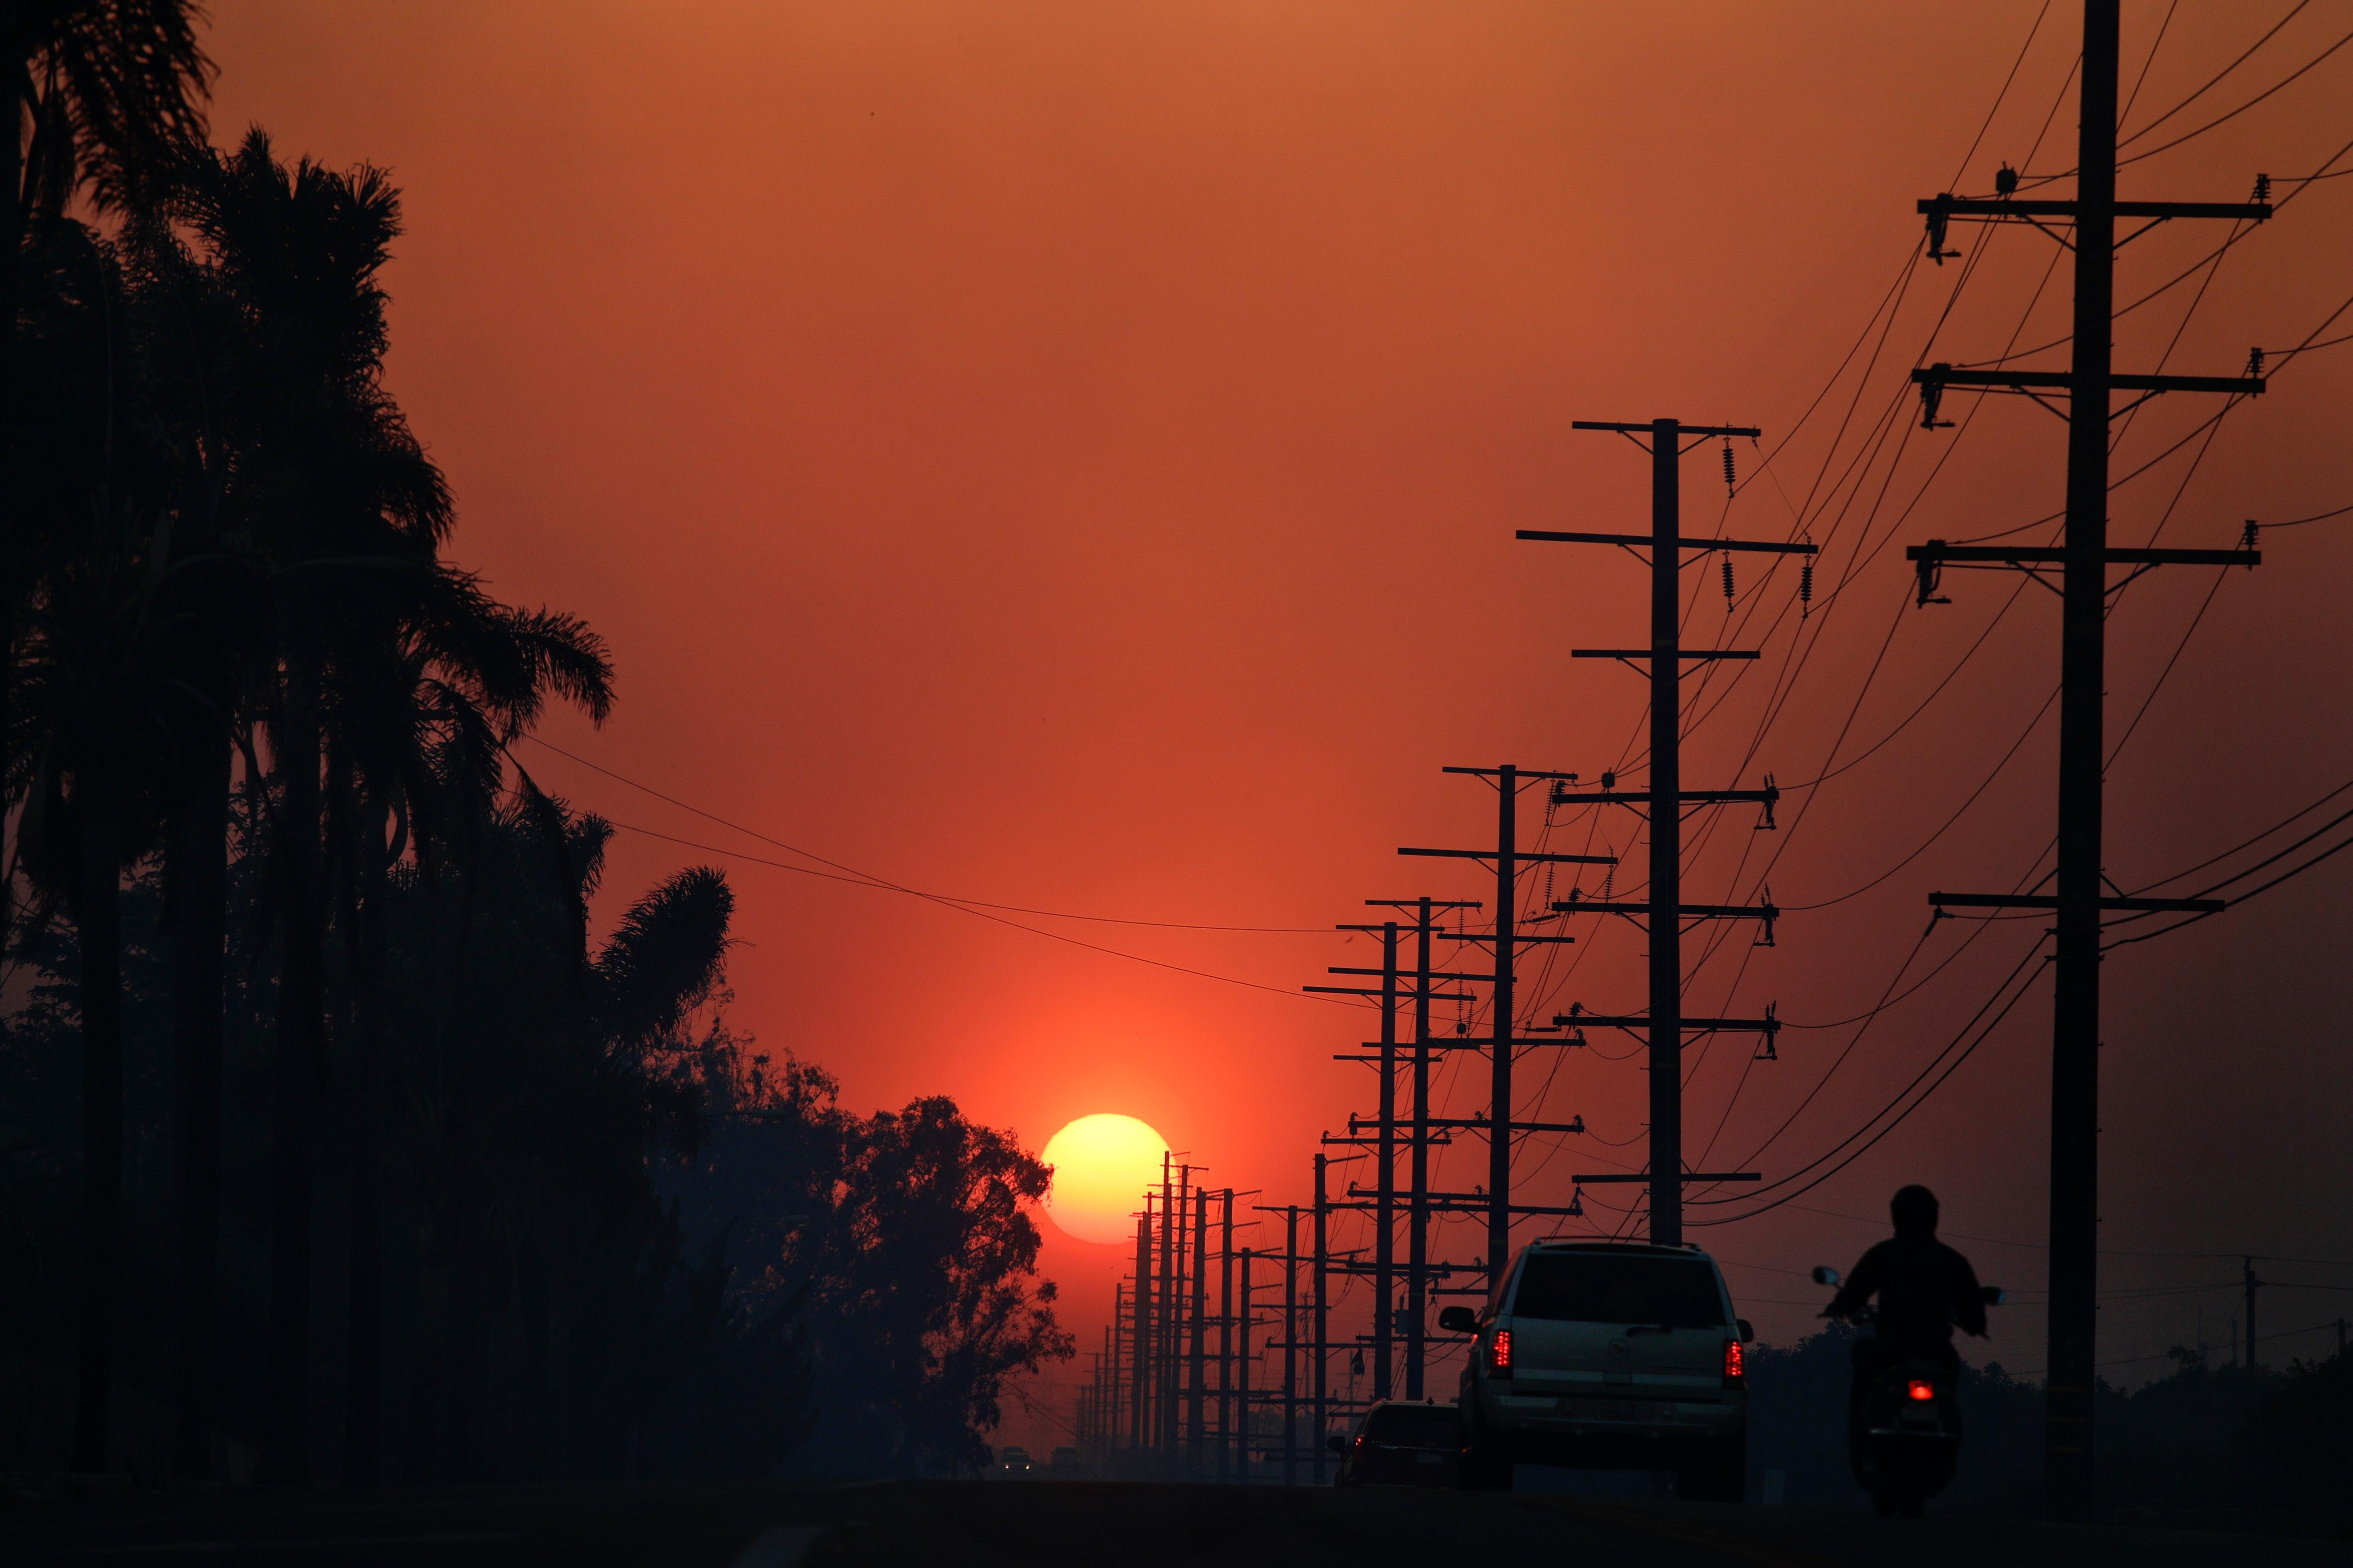 The sun is seen through thick smoke generated by a wildfire Tuesday, Dec. 5, 2017, in Santa Paula, Calif. Raked by ferocious Santa Ana winds, explosive wildfires northwest of Los Angeles and in the city's foothills burned a psychiatric hospital and scores of homes and other structures Tuesday and forced the evacuation of tens of thousands of people. (AP Photo/Jae C. Hong)